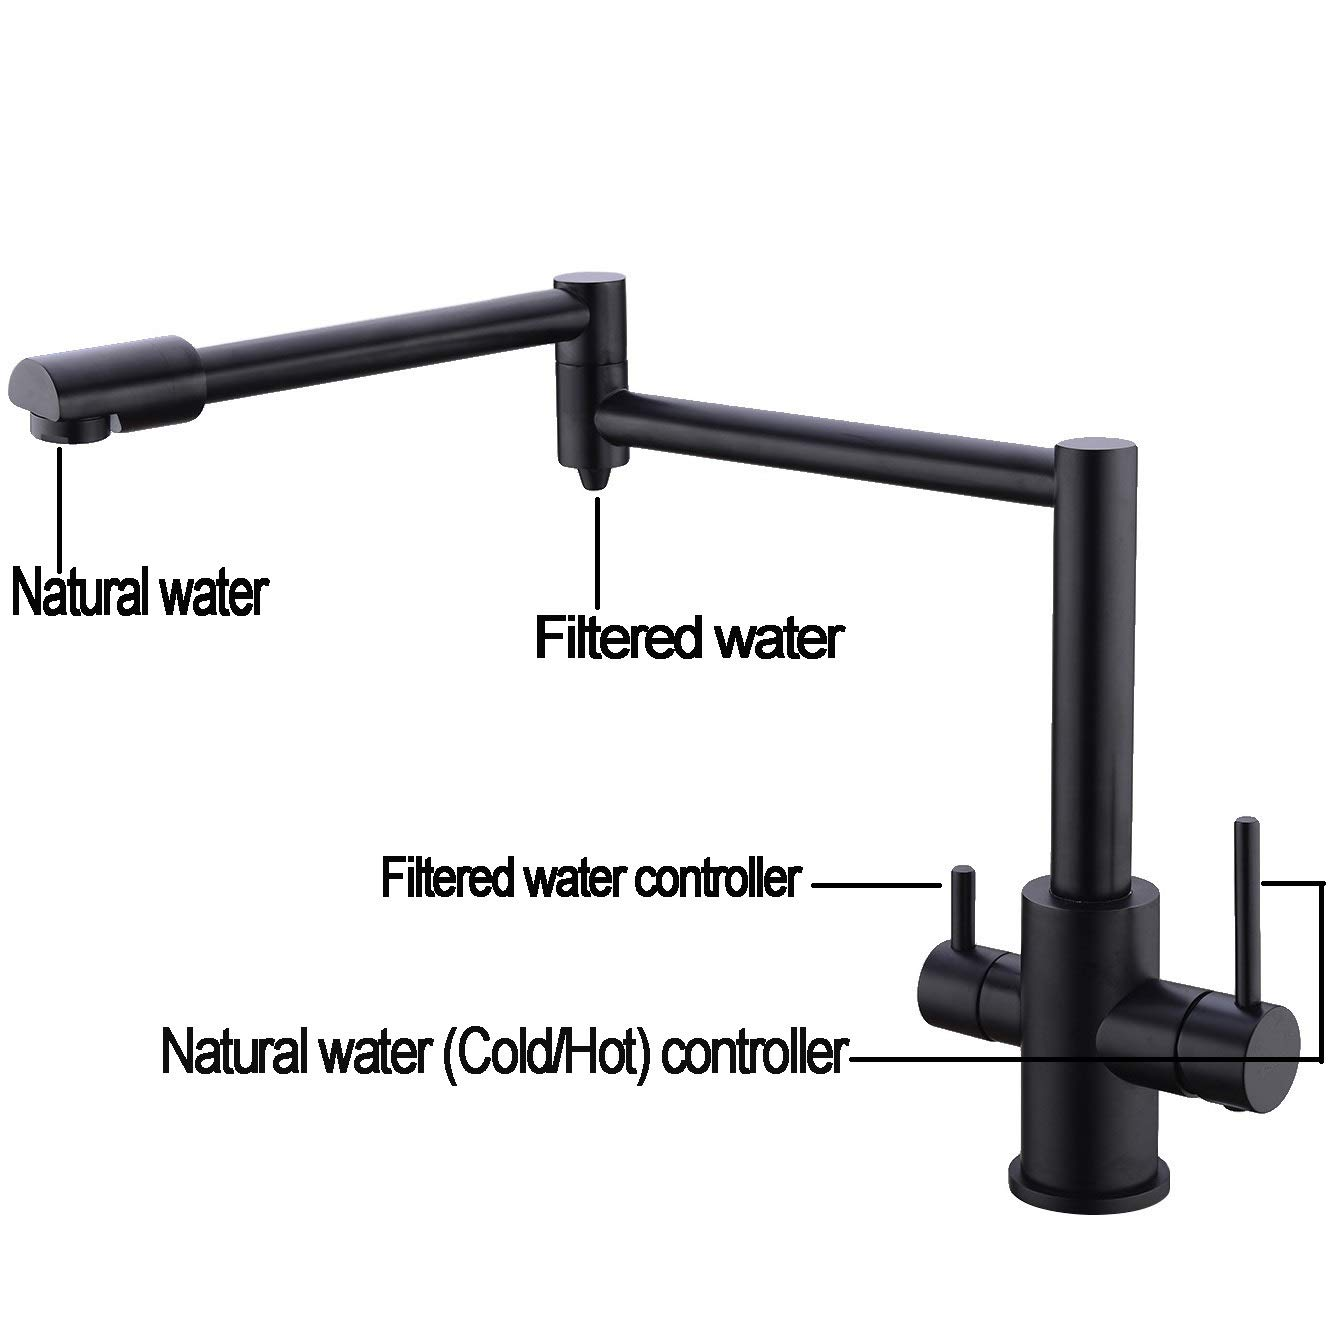 3 Way Pot Filler Folding Kitchen Faucet with RO Water Faucet for Under Sink Water Filter System,Delle Rosa Single Hole Dual Handle Brass Kitchen Sink Faucet Matte Black Deck Mount Kitchen Faucet